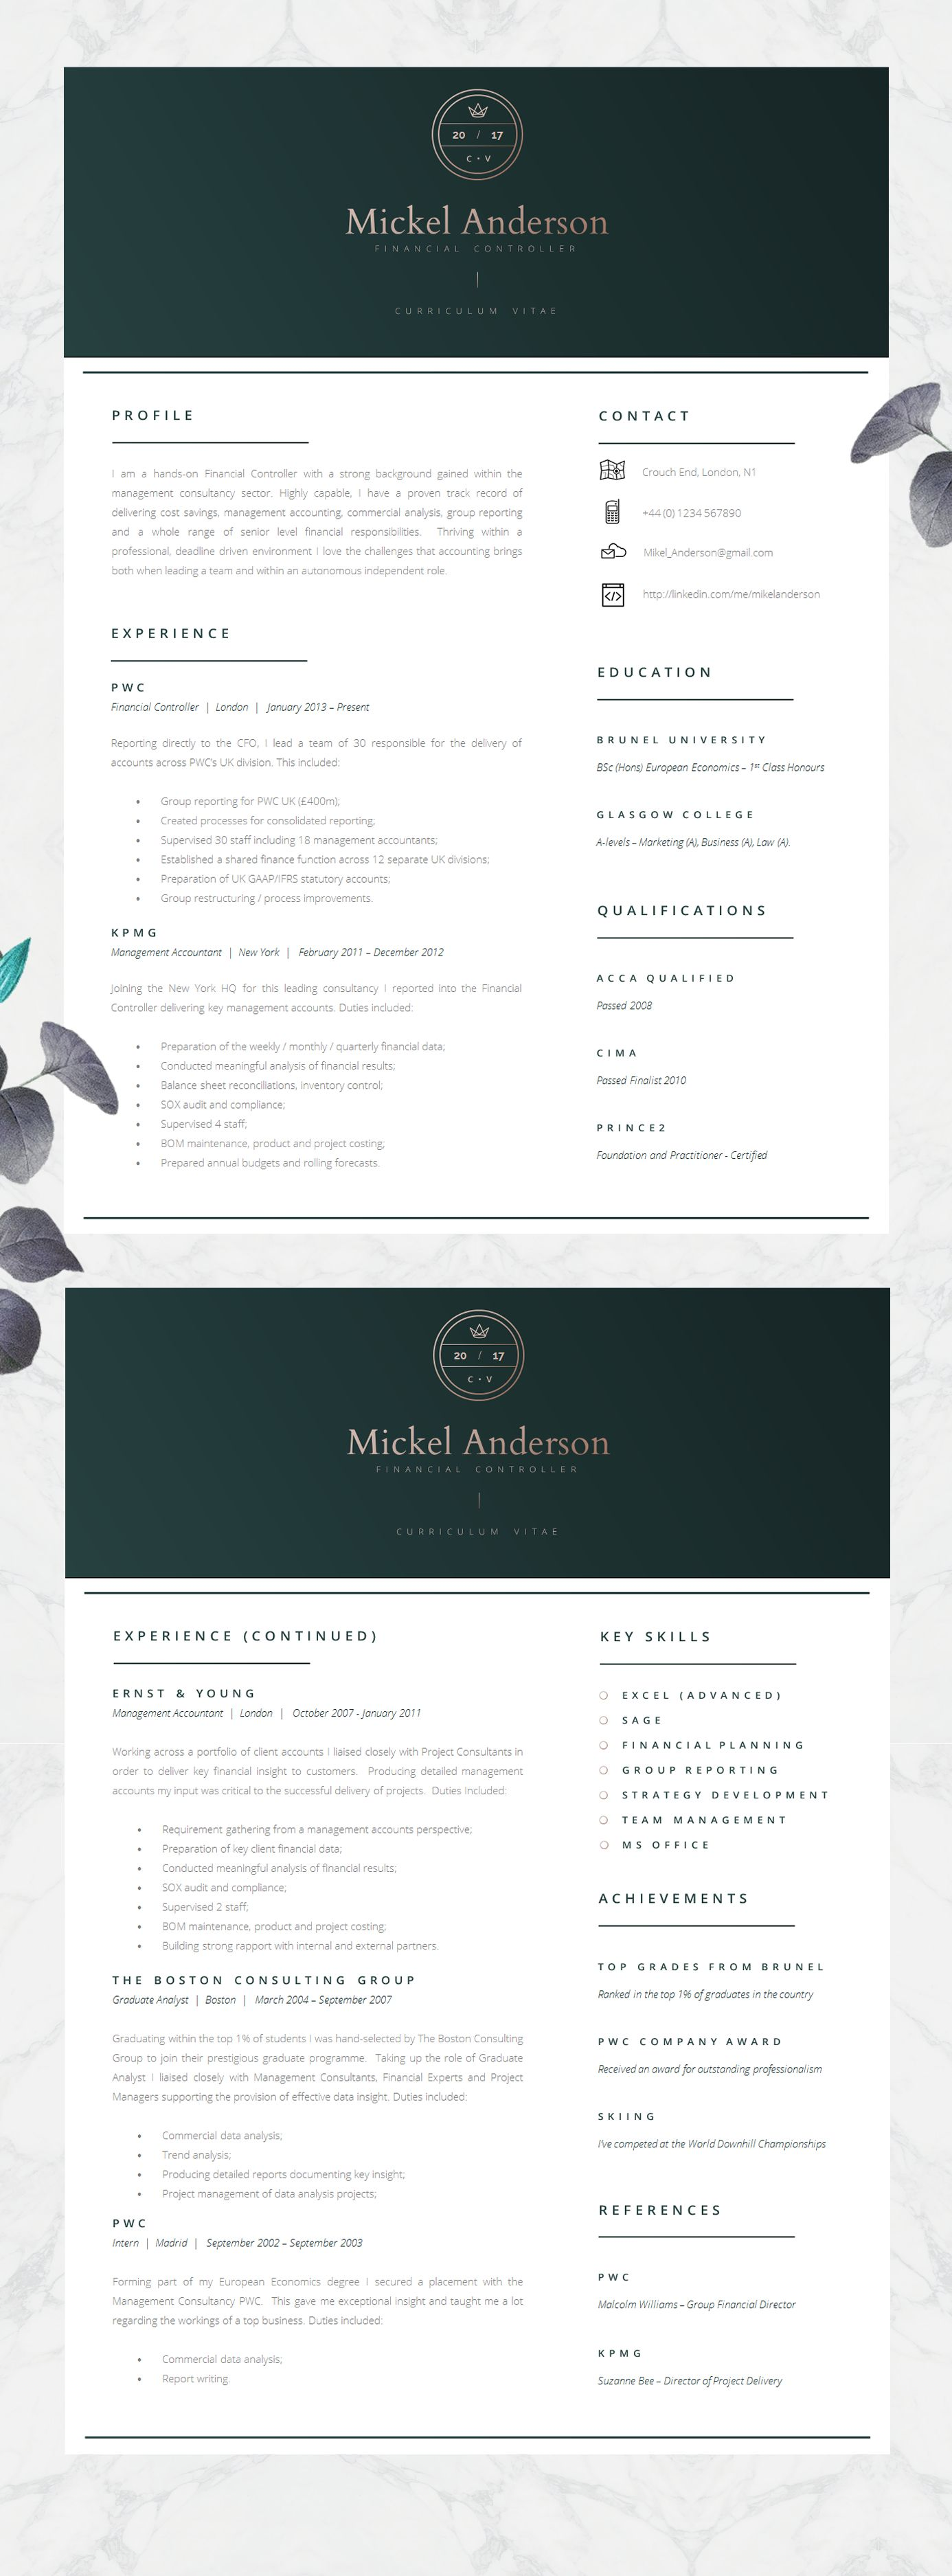 Professional Resume Template  Resume Design  Resume Design